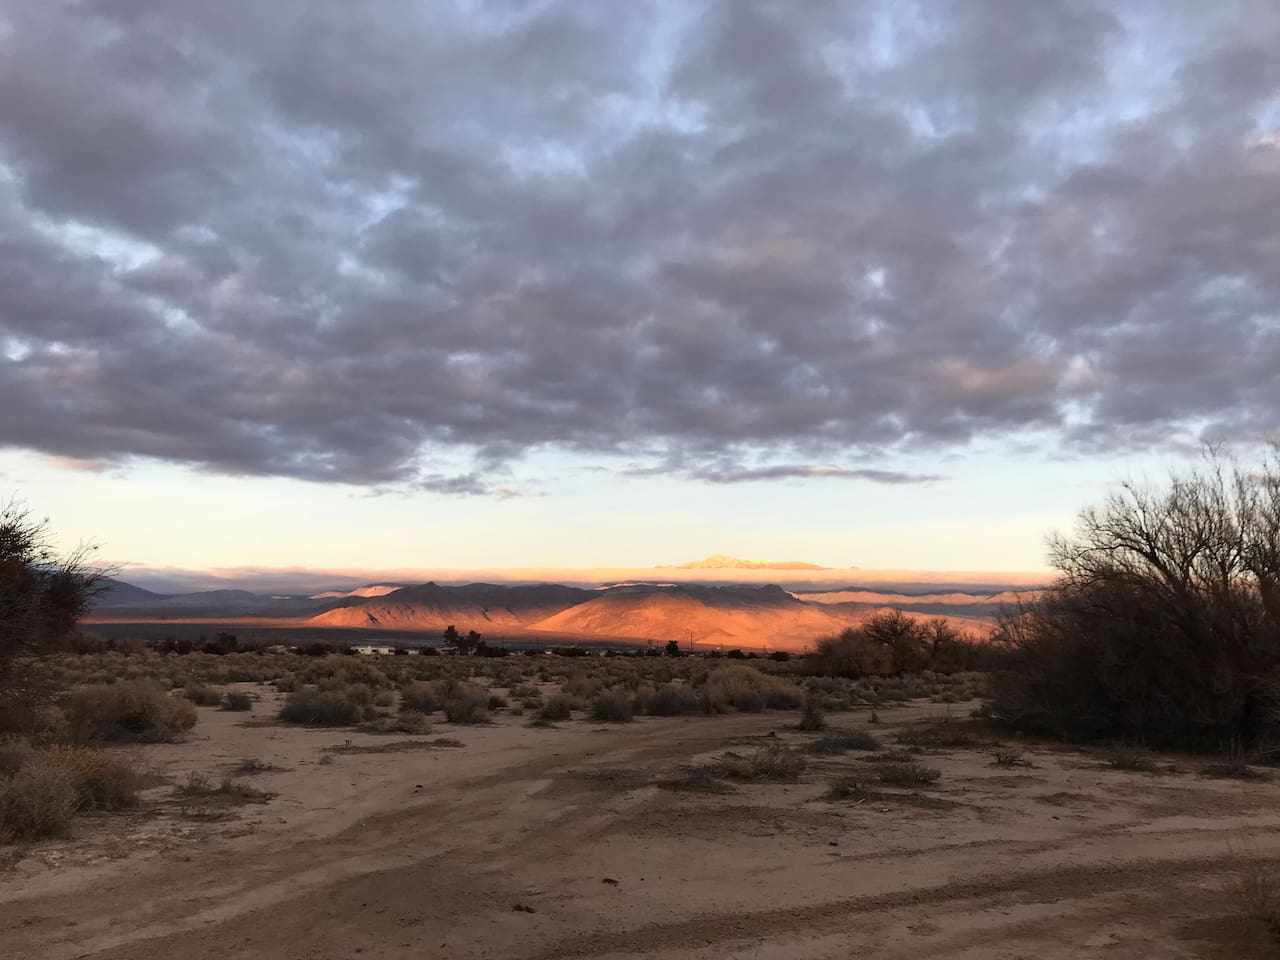 Just across the street is a natural area to catch the sunset illuminate Mt Charleston! Spot coyotes, roadrunners, quail, rabbits and lizards here too!